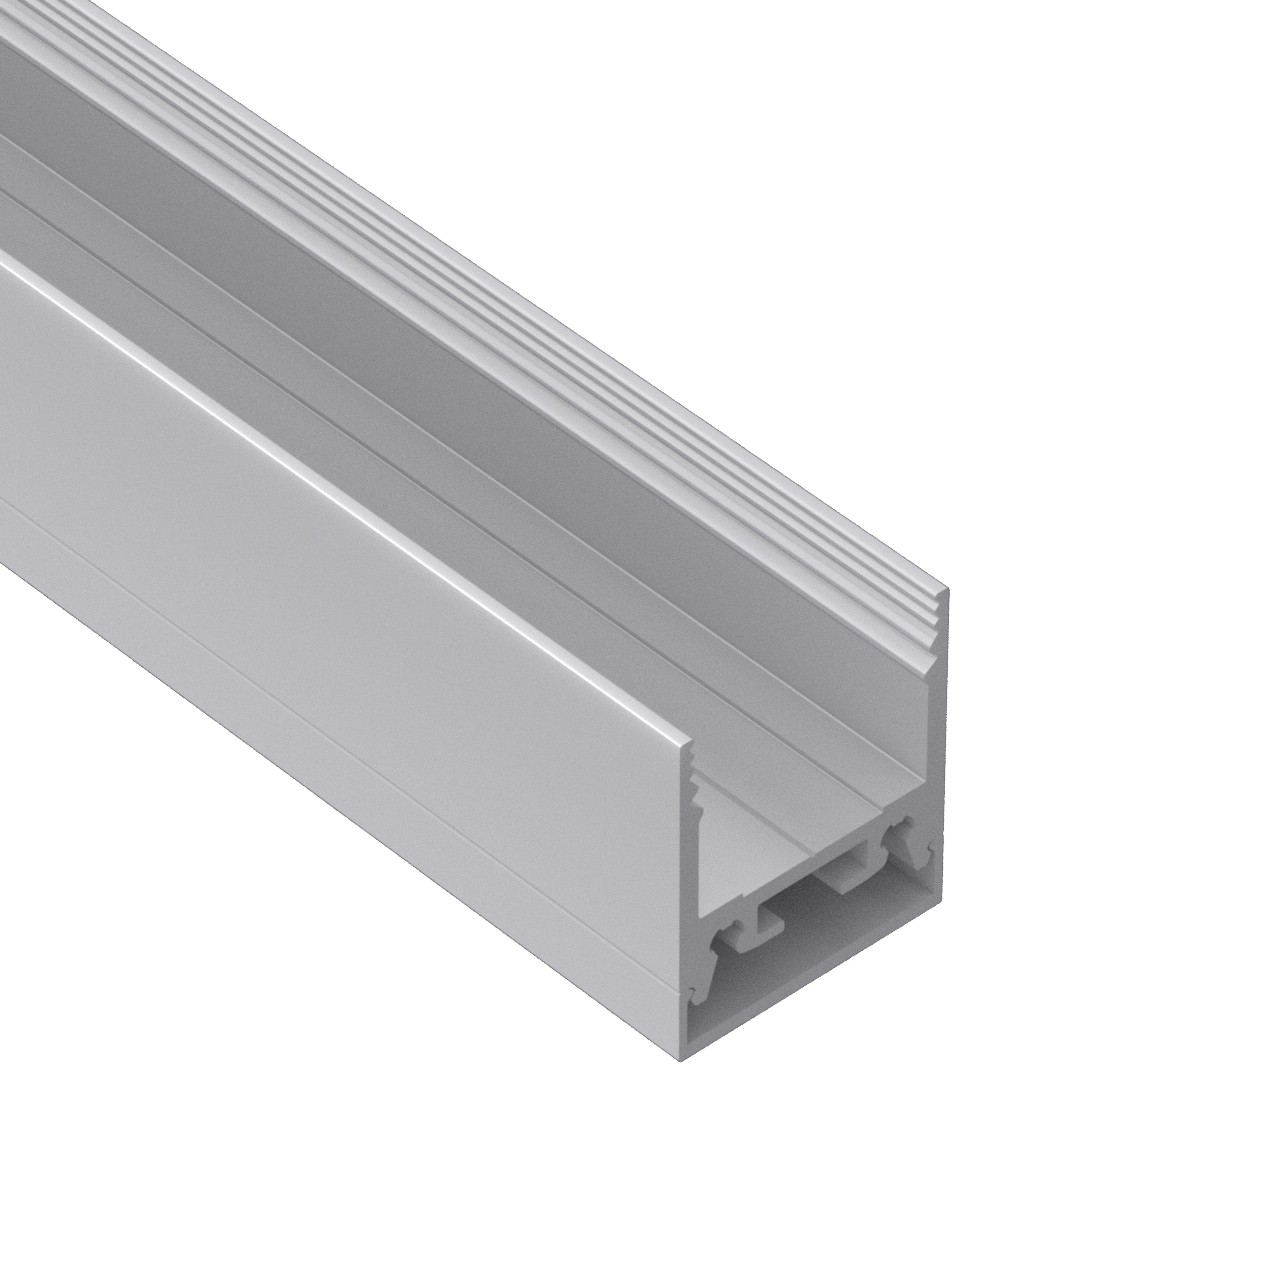 AT12N-3 Deeper surface square led profile 19.7x22.6mm